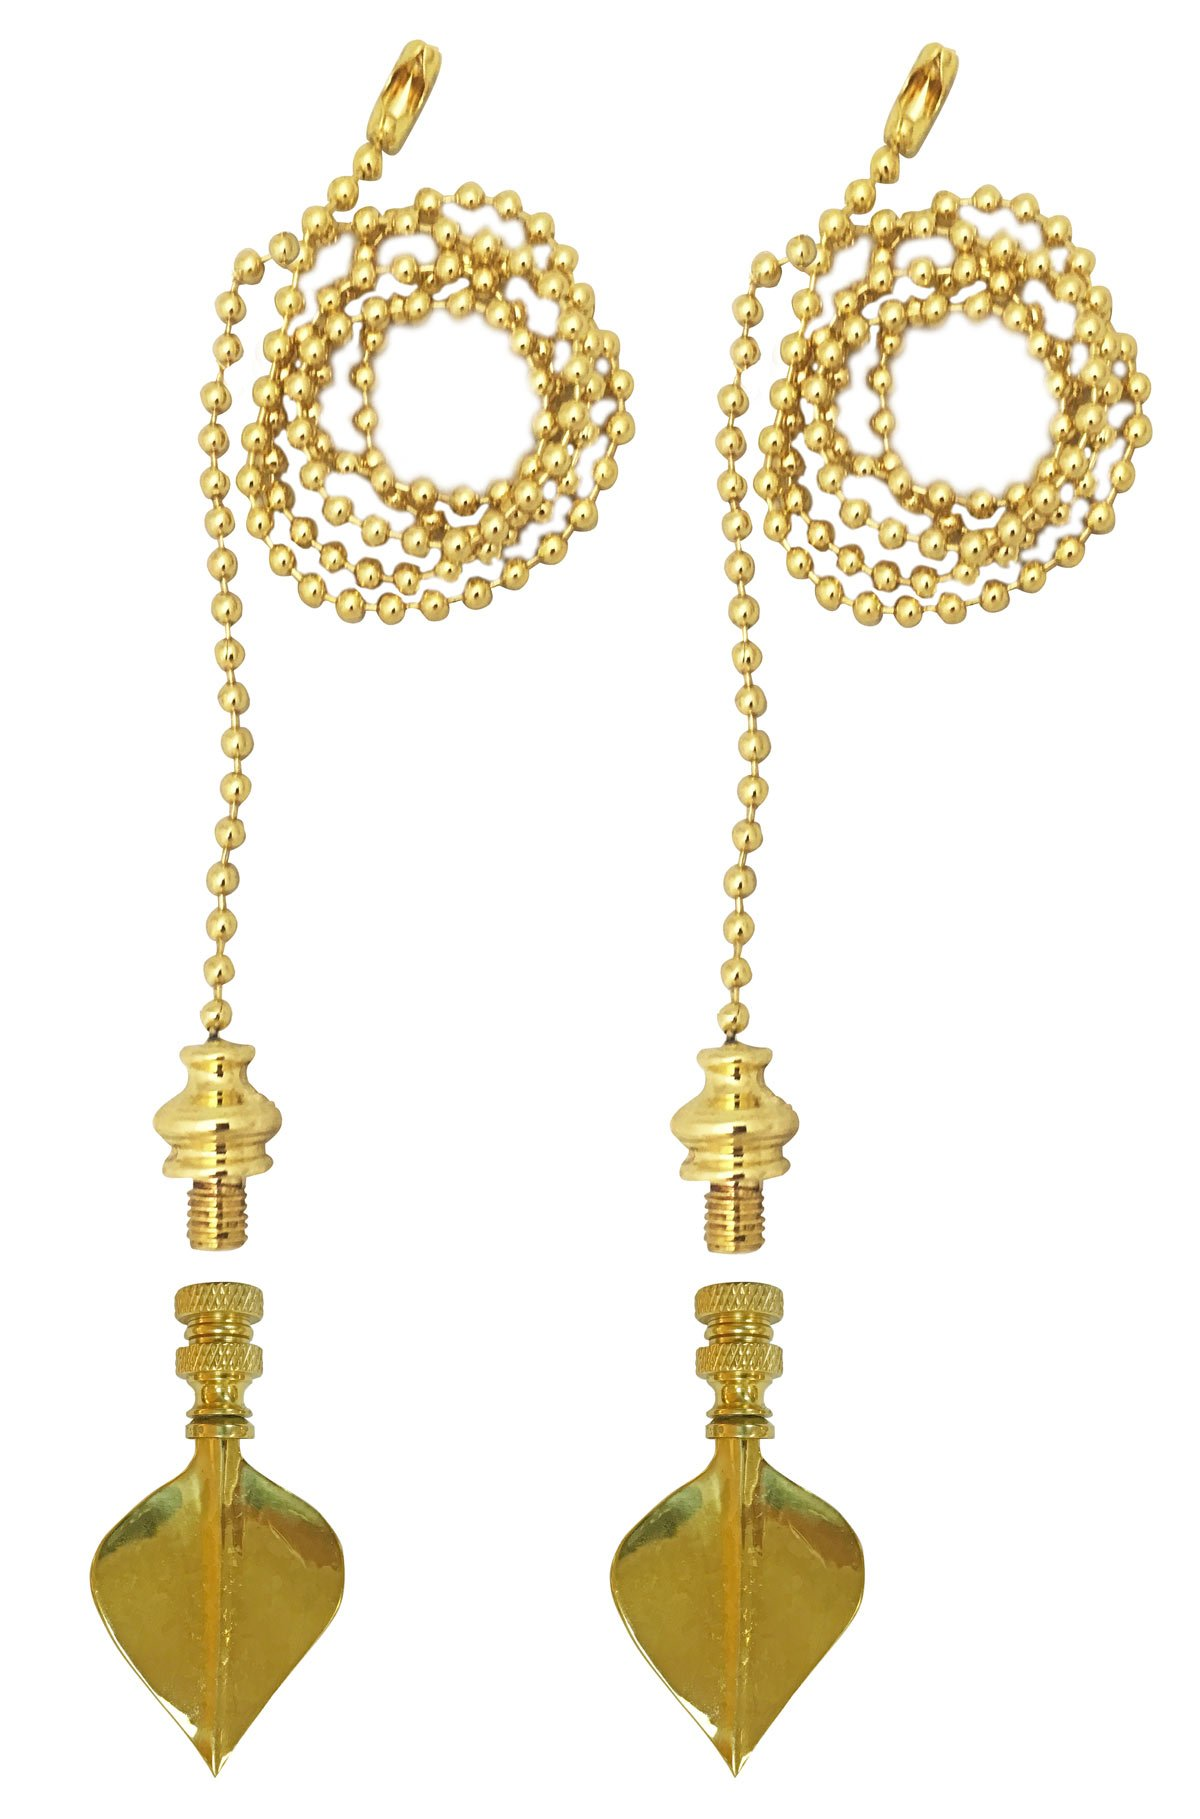 Royal Designs Fan Pull Chain with Spade Leaf Finial - Polished Brass - Set of 2